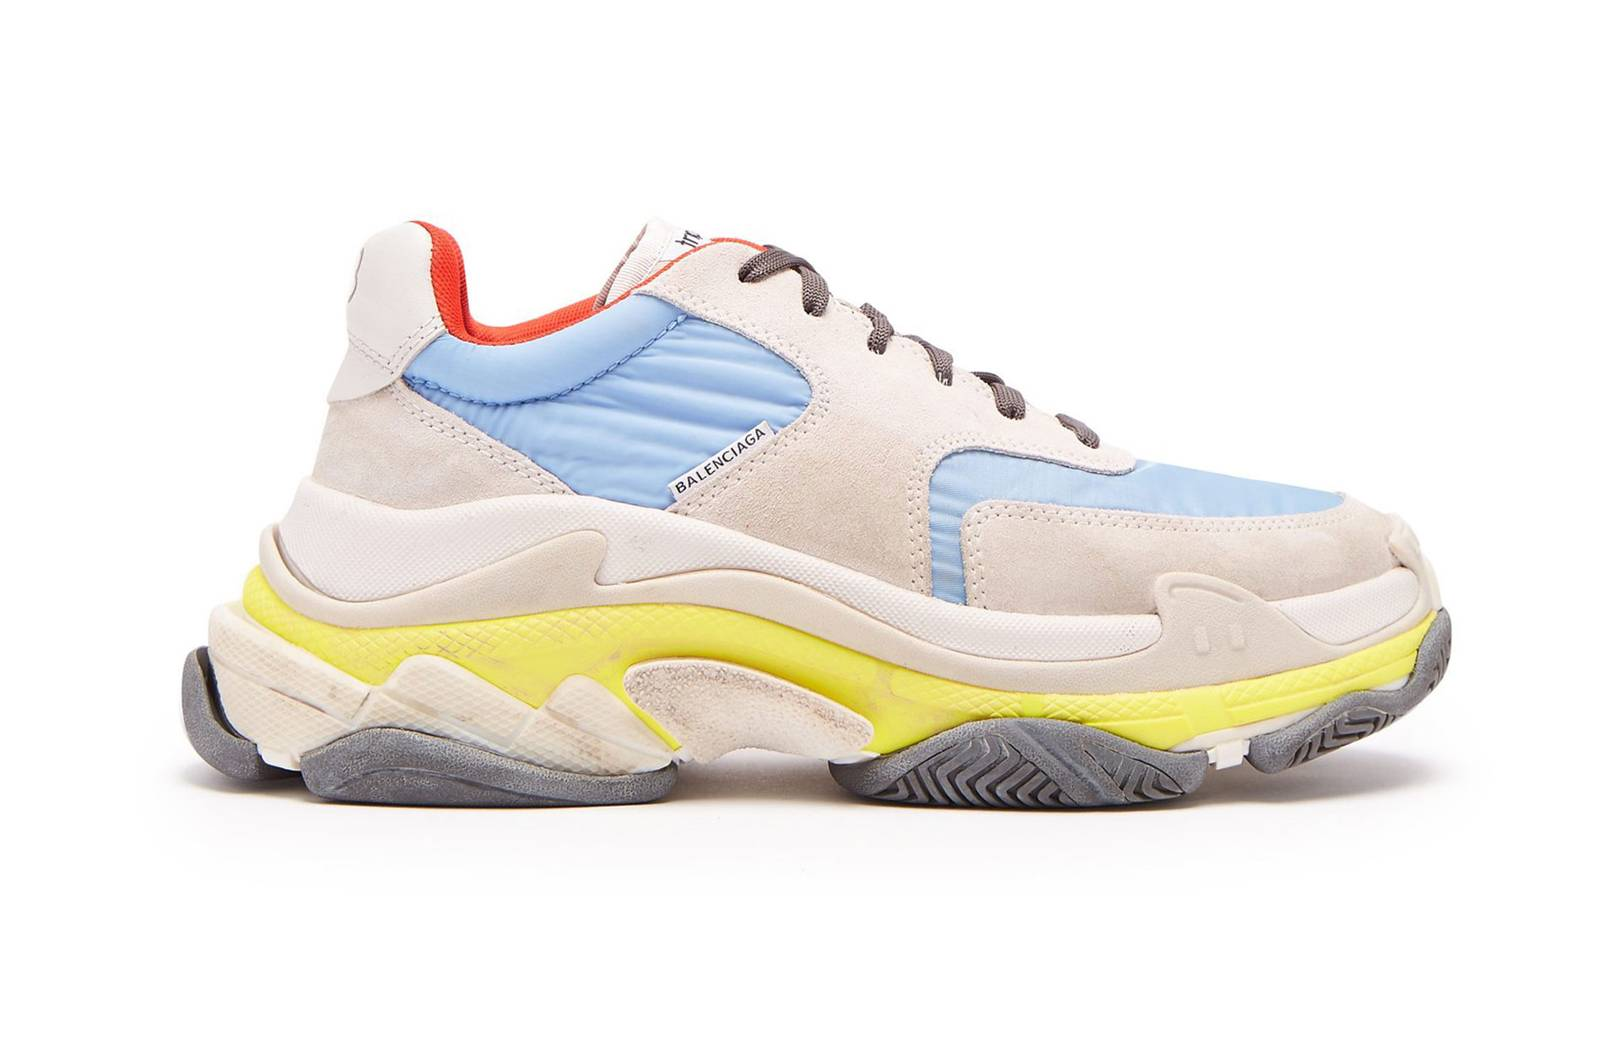 Balenciaga - Triple S low-top trainers, £615